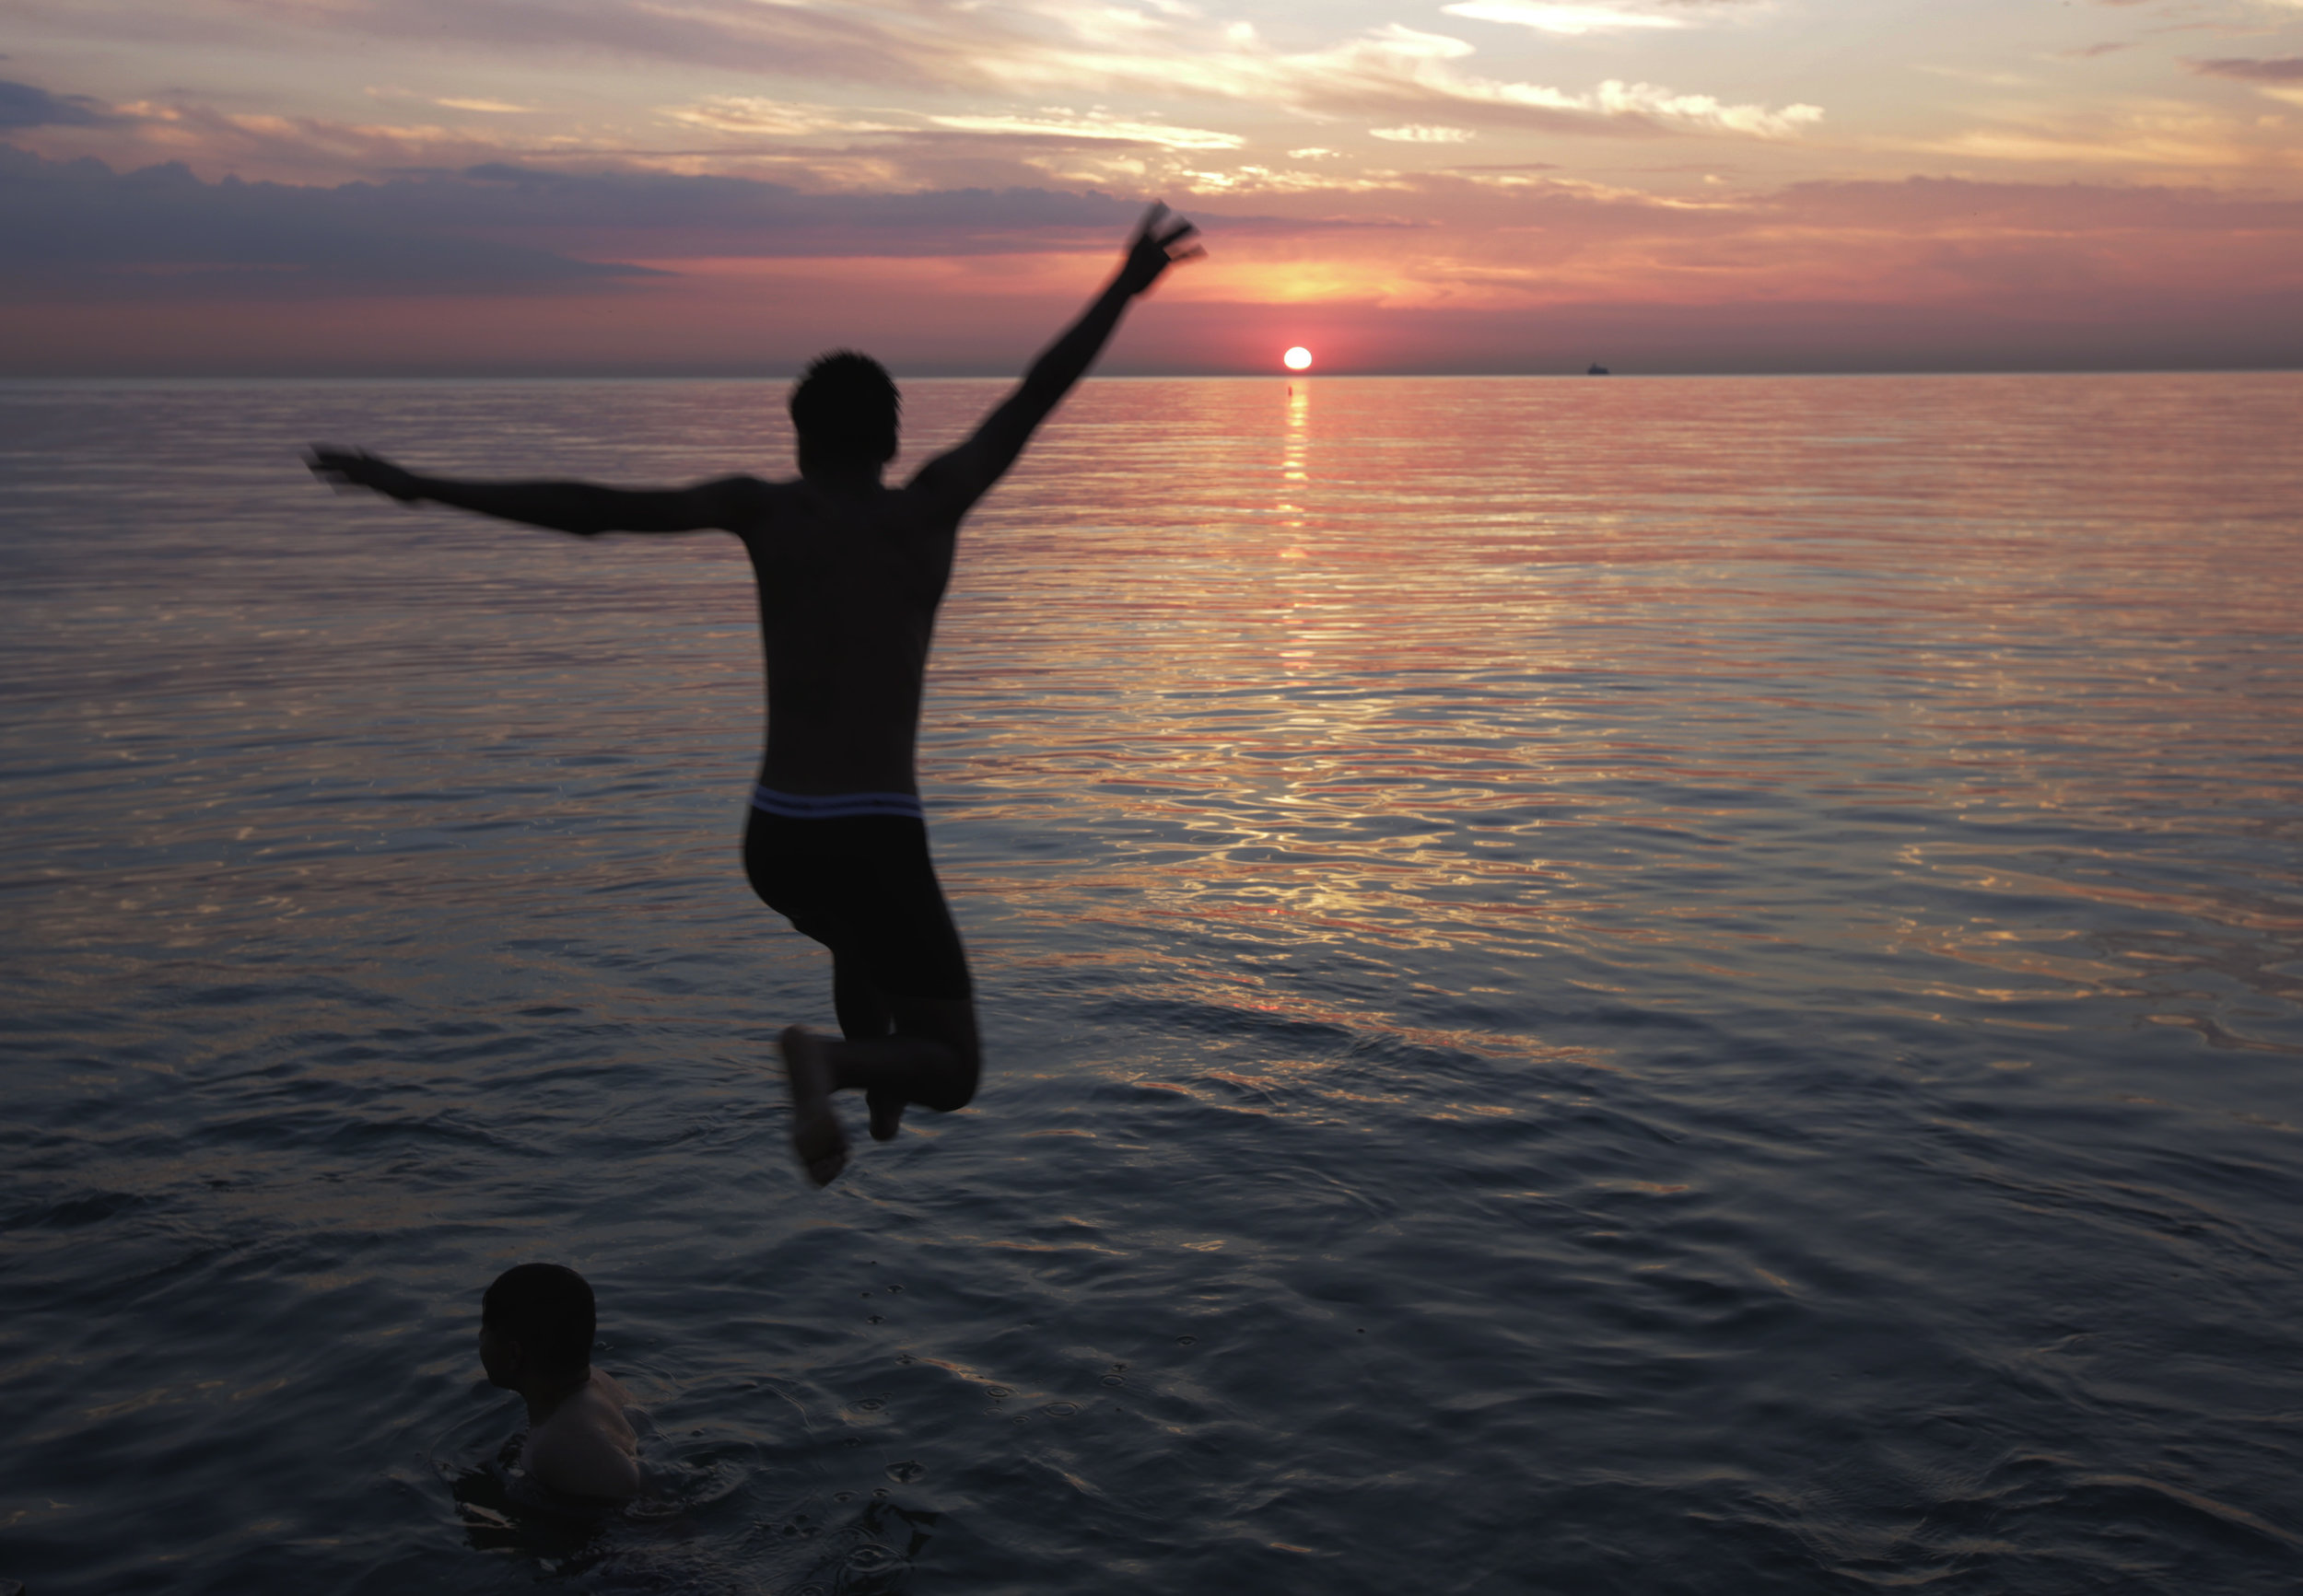 Alex Delgado is silhouetted by the rising sun as he jumps into Lake Michigan, Tuesday, Aug. 1, 2017 in Chicago. (AP Photo/G-Jun Yam)